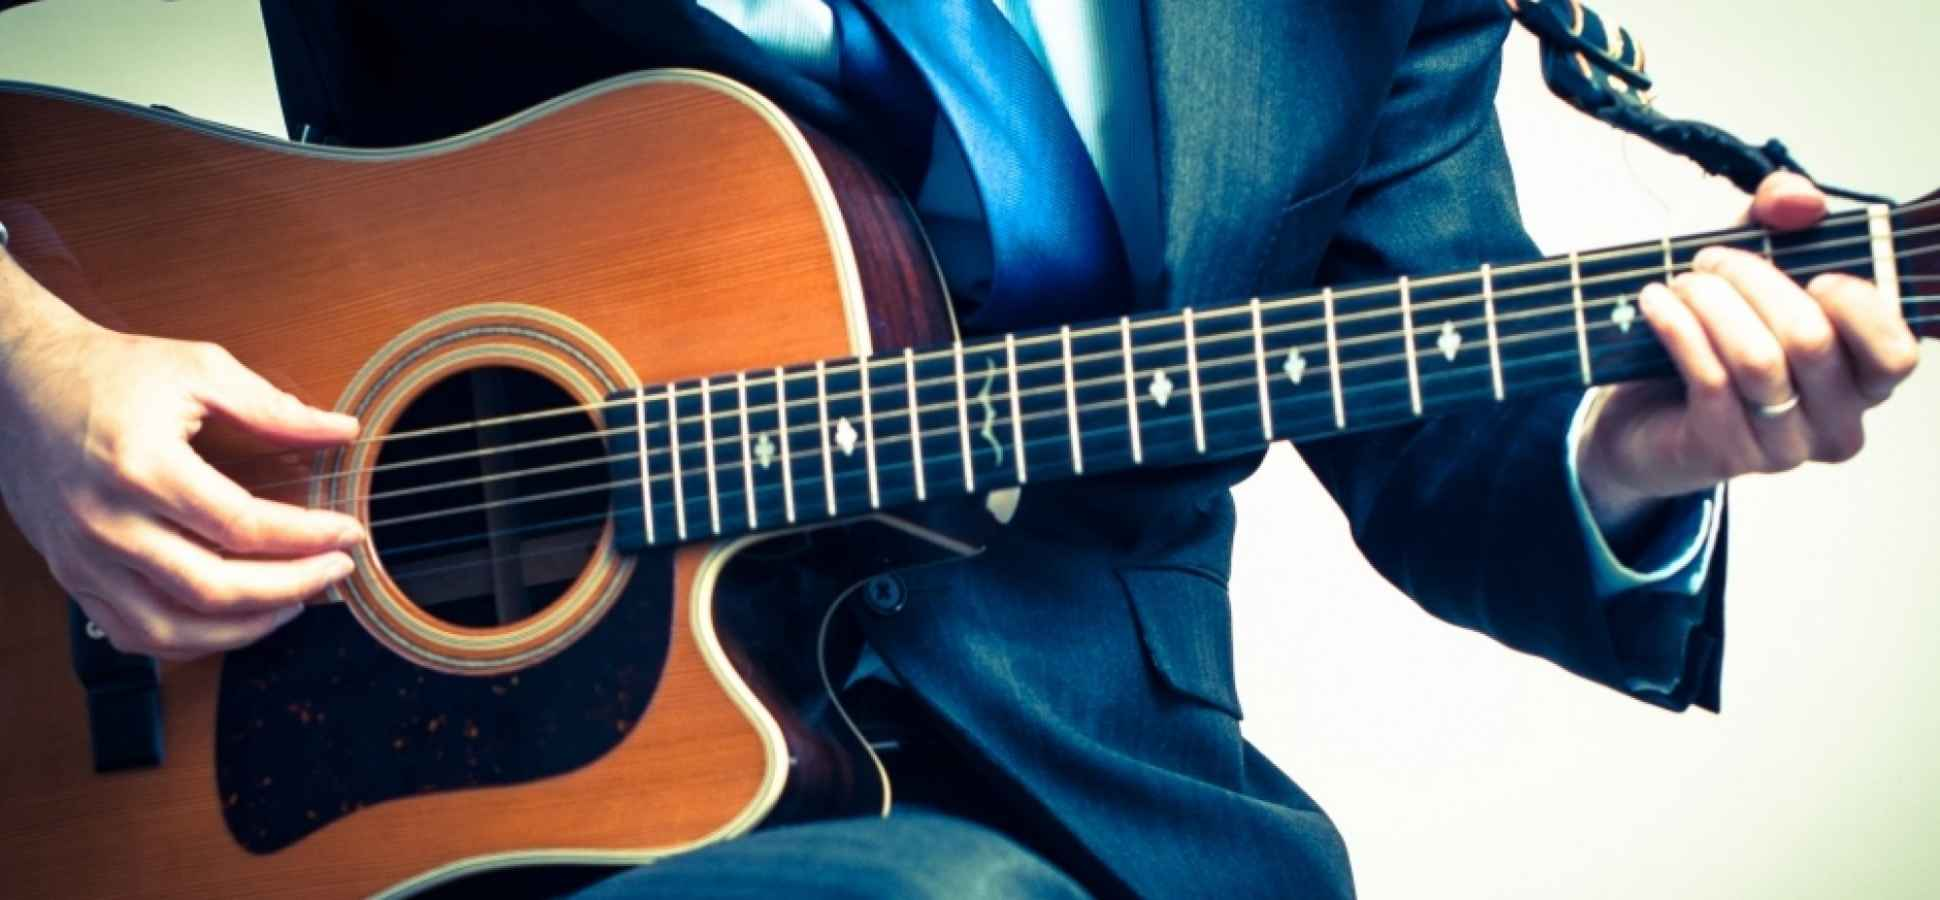 Want to Be a Better Leader? Break Out the Old Guitar and Join a Band